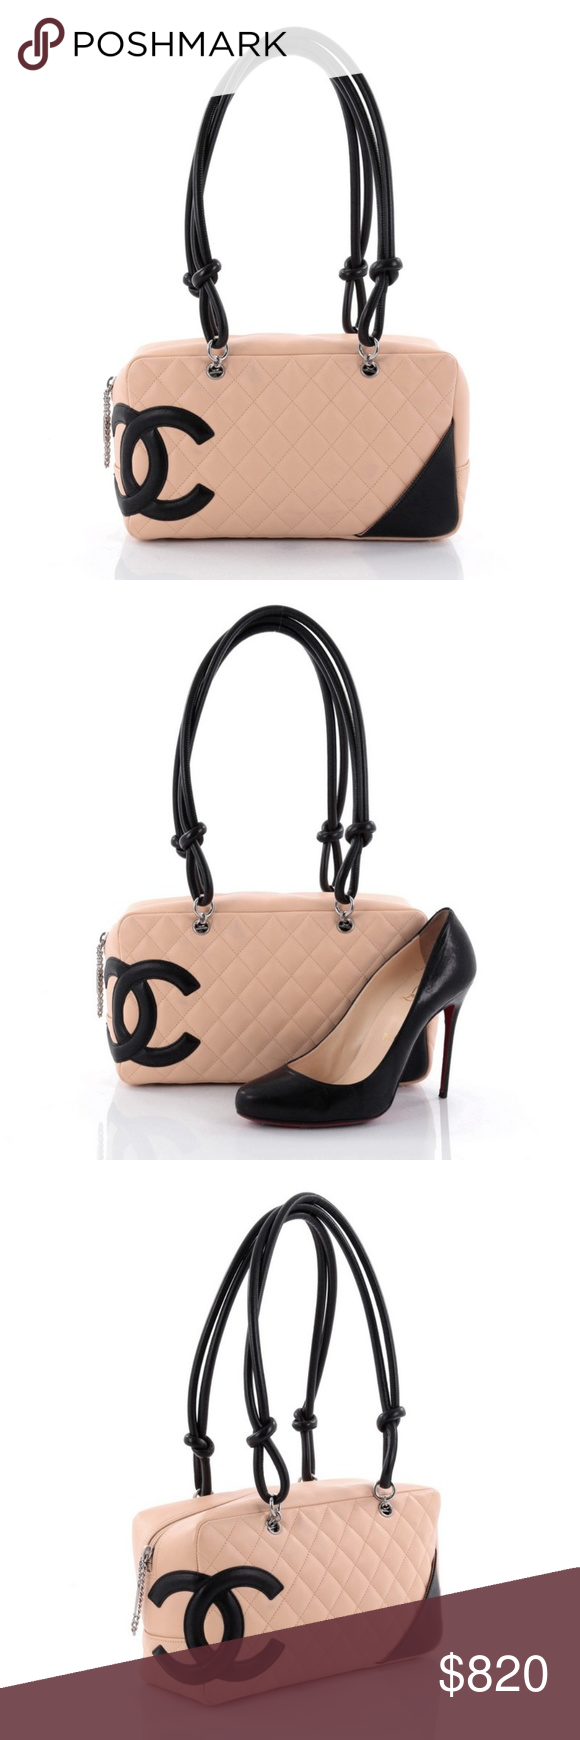 a506f88085 Chanel Cambon Bowler Bag Quilted Leather Medium Condition: Very good.  Discoloration marks on front